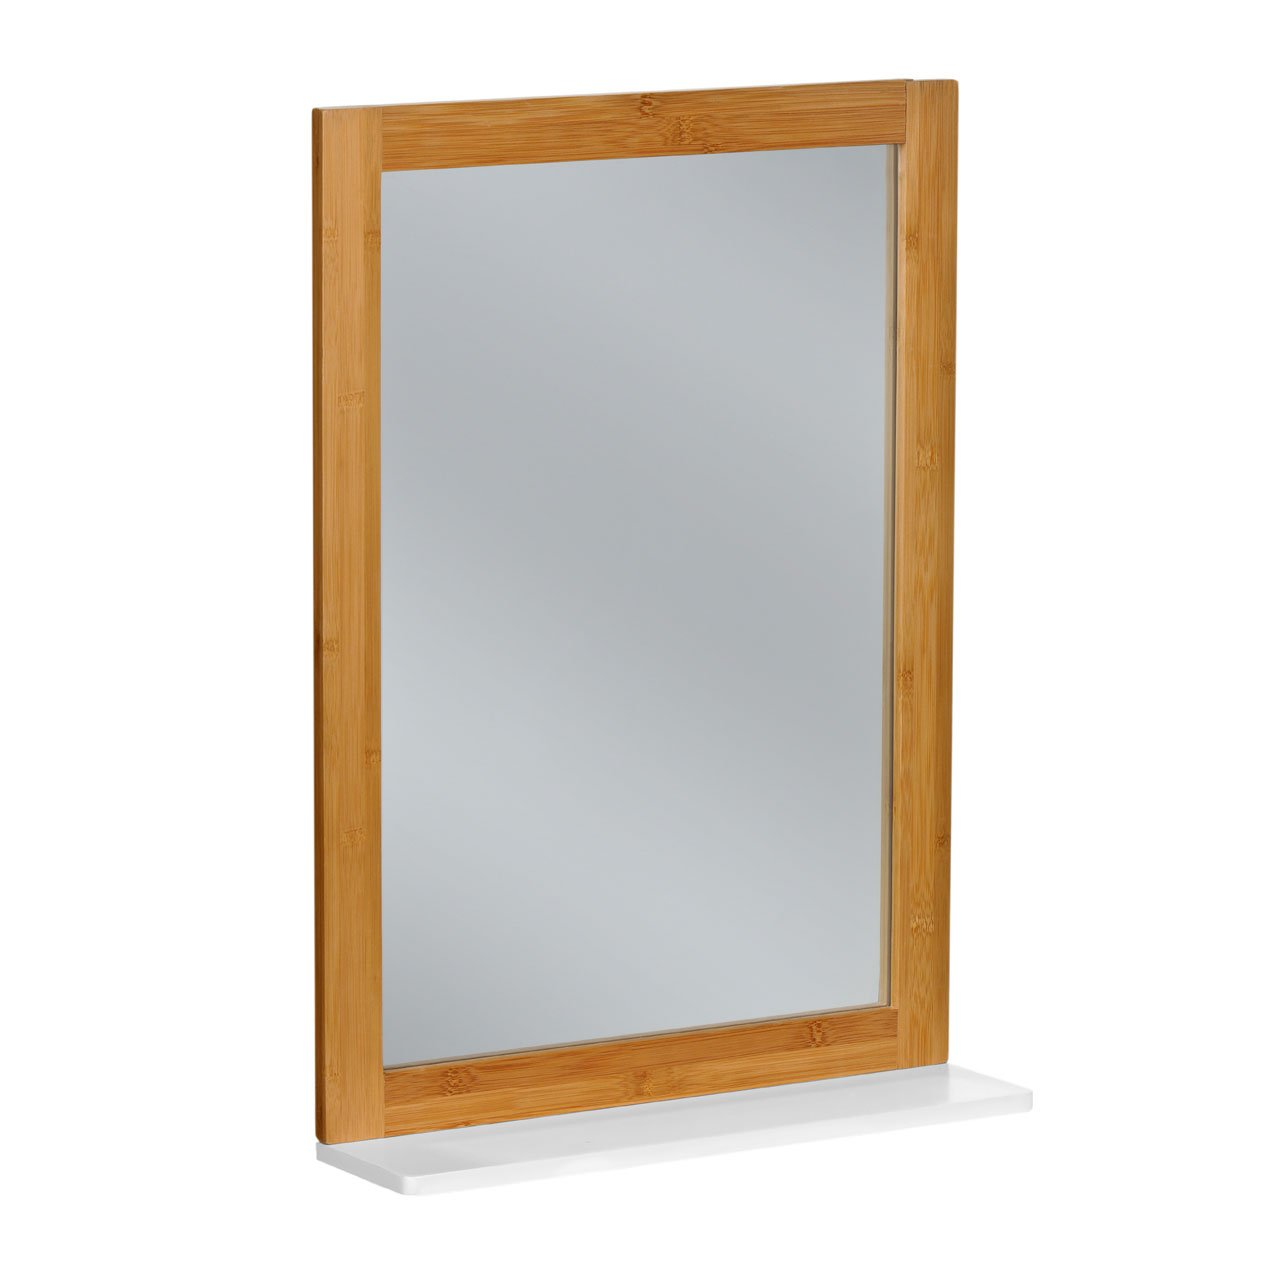 Amazon.com: WALL MIRROR BAMBOO WOOD FRAME WITH MDF WHITE FINISH ...